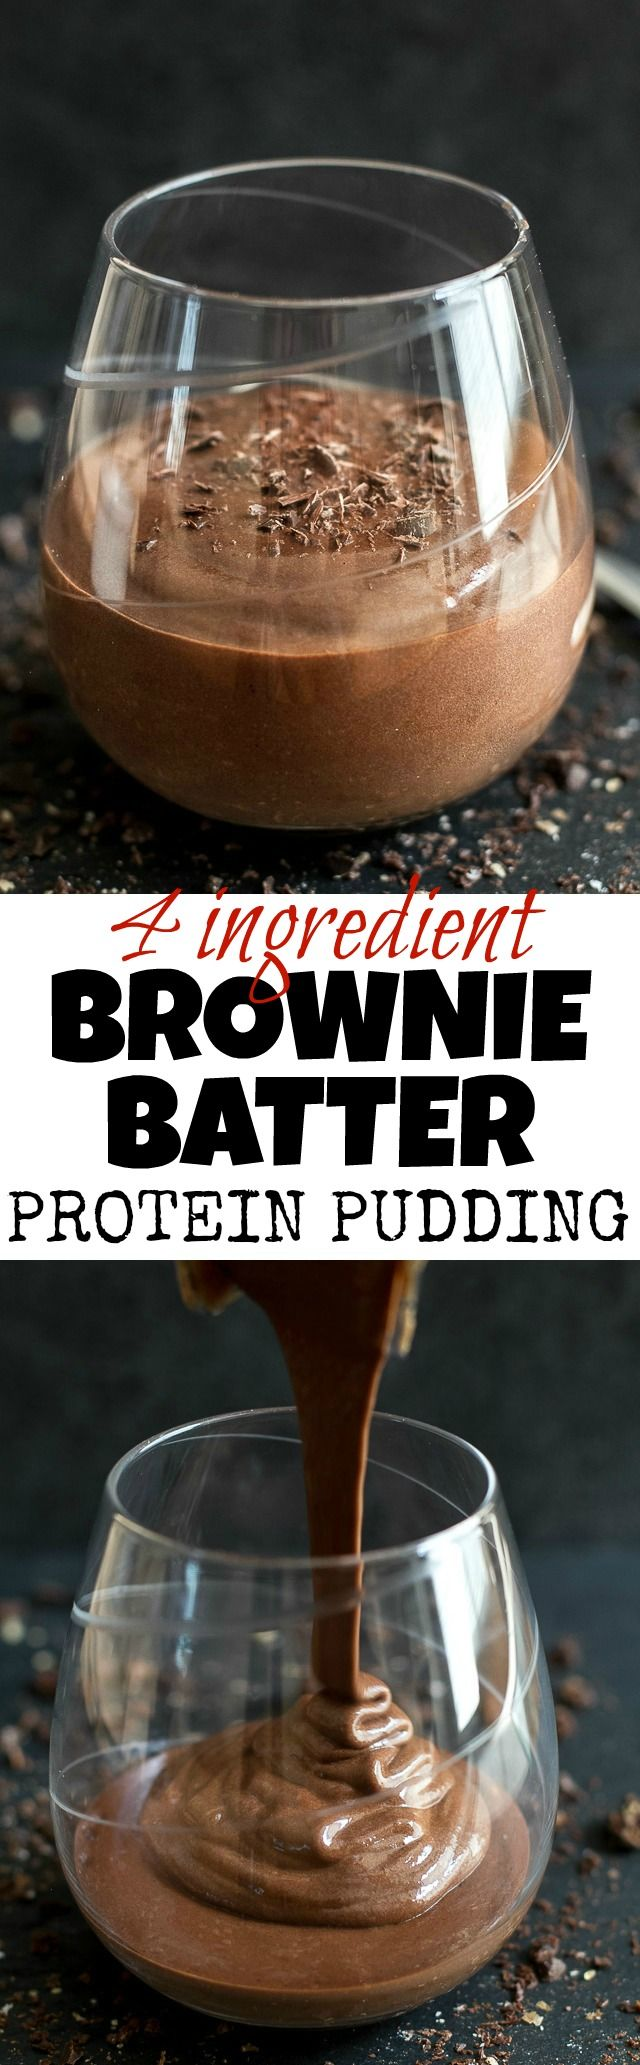 Brownie Batter Protein Pudding - high in protein and packed with a rich chocolate flavour, this addictively DELICIOUS recipe requires only 4 ingredients and 5 minutes to make! | runningwithspoons... @PlantFusion #vegan #glutenfree #healthy